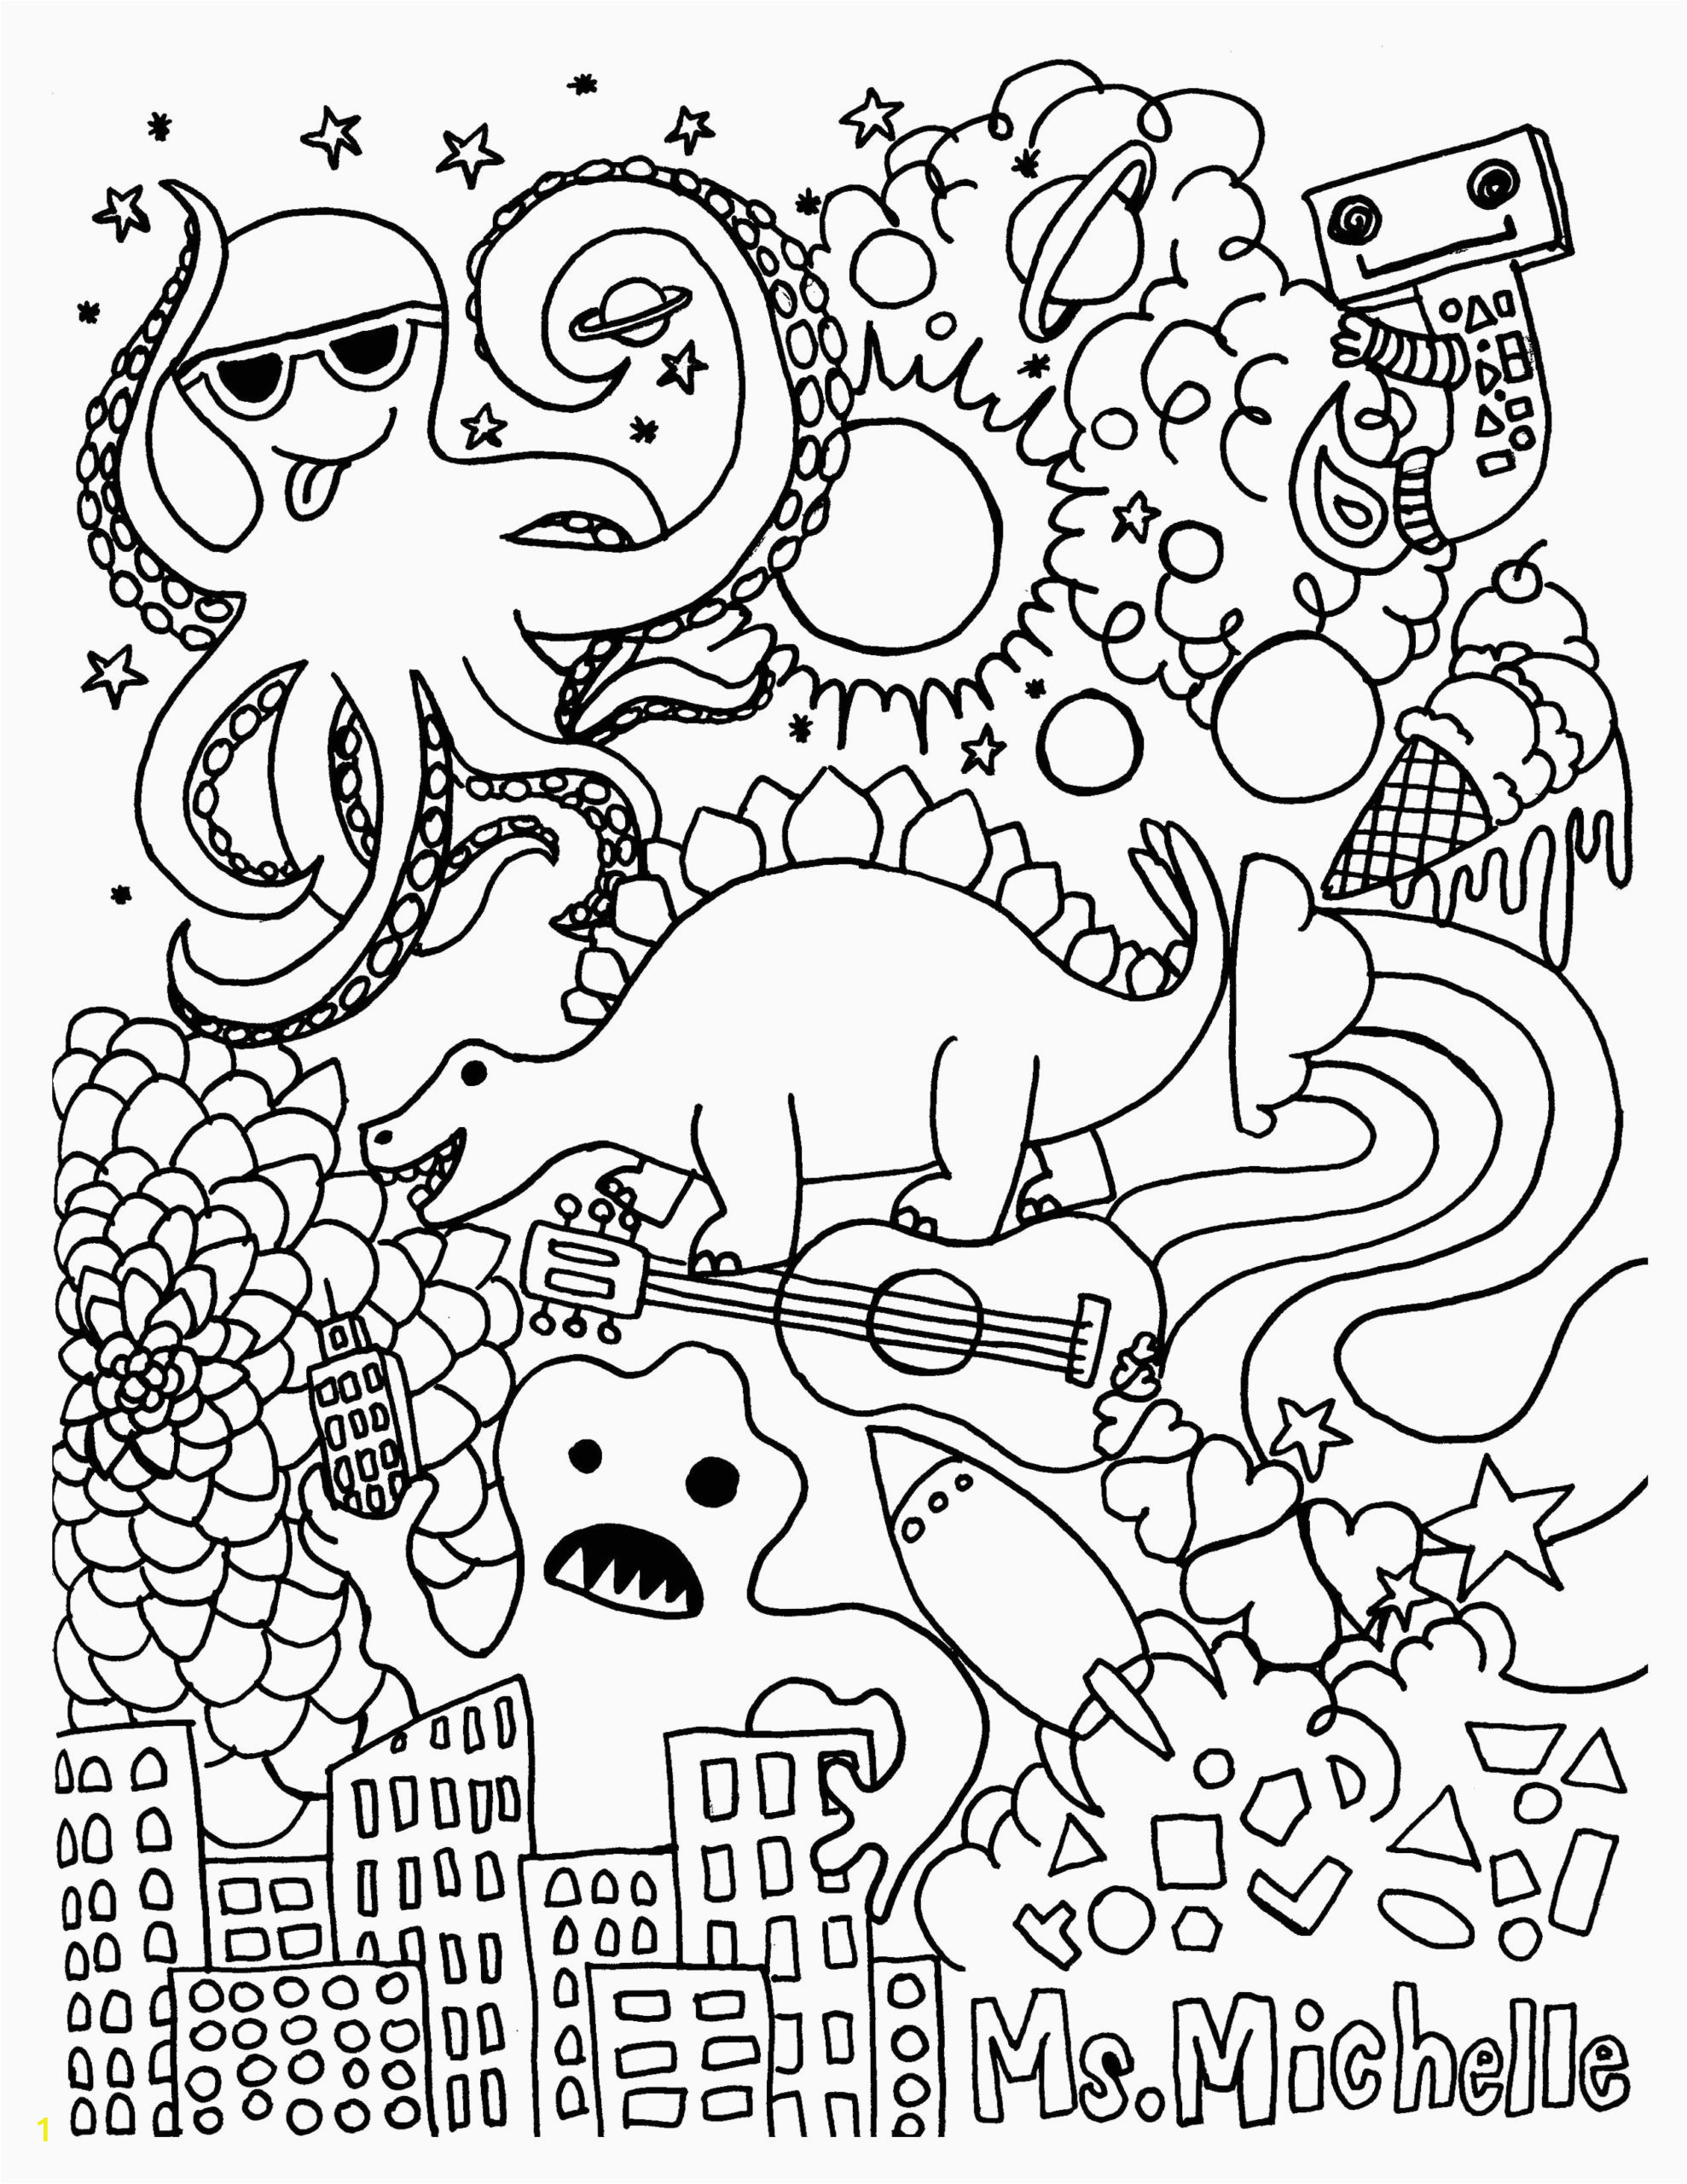 Preschool Coloring Pages for Spring Coloring Book Coloring Picture Create Your Own Coloringge